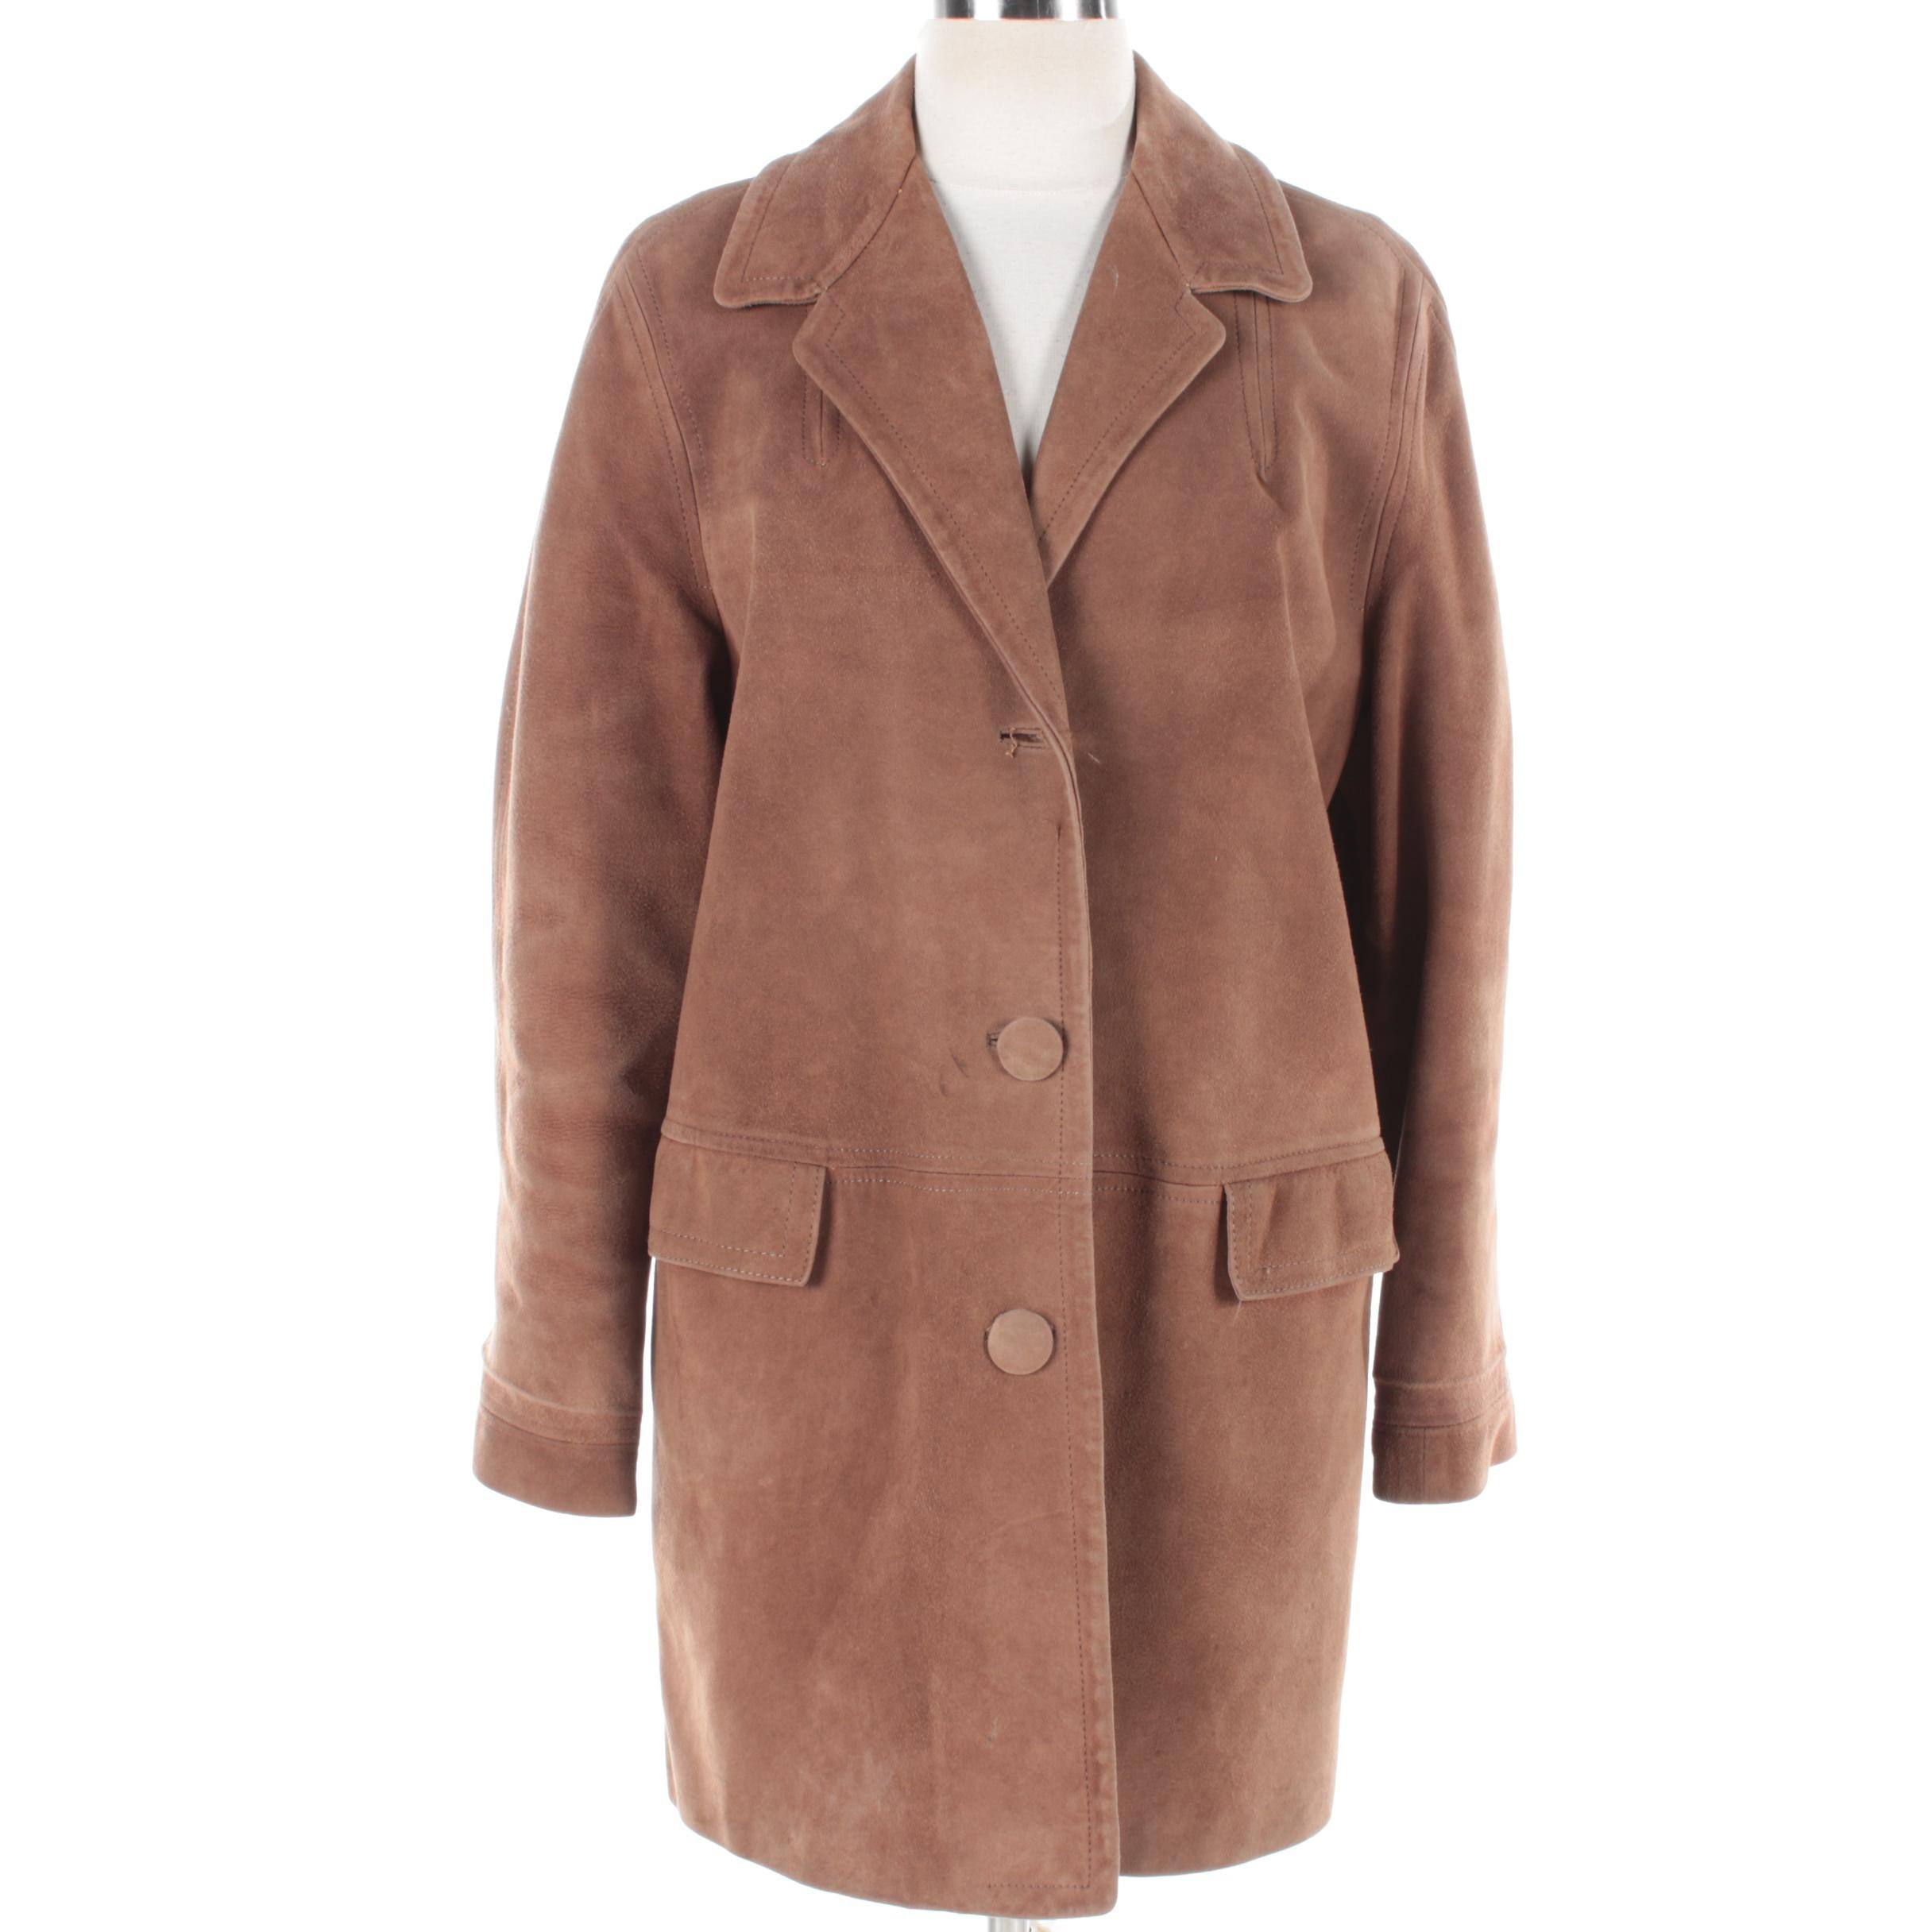 Women's Vintage Brown Suede Coat